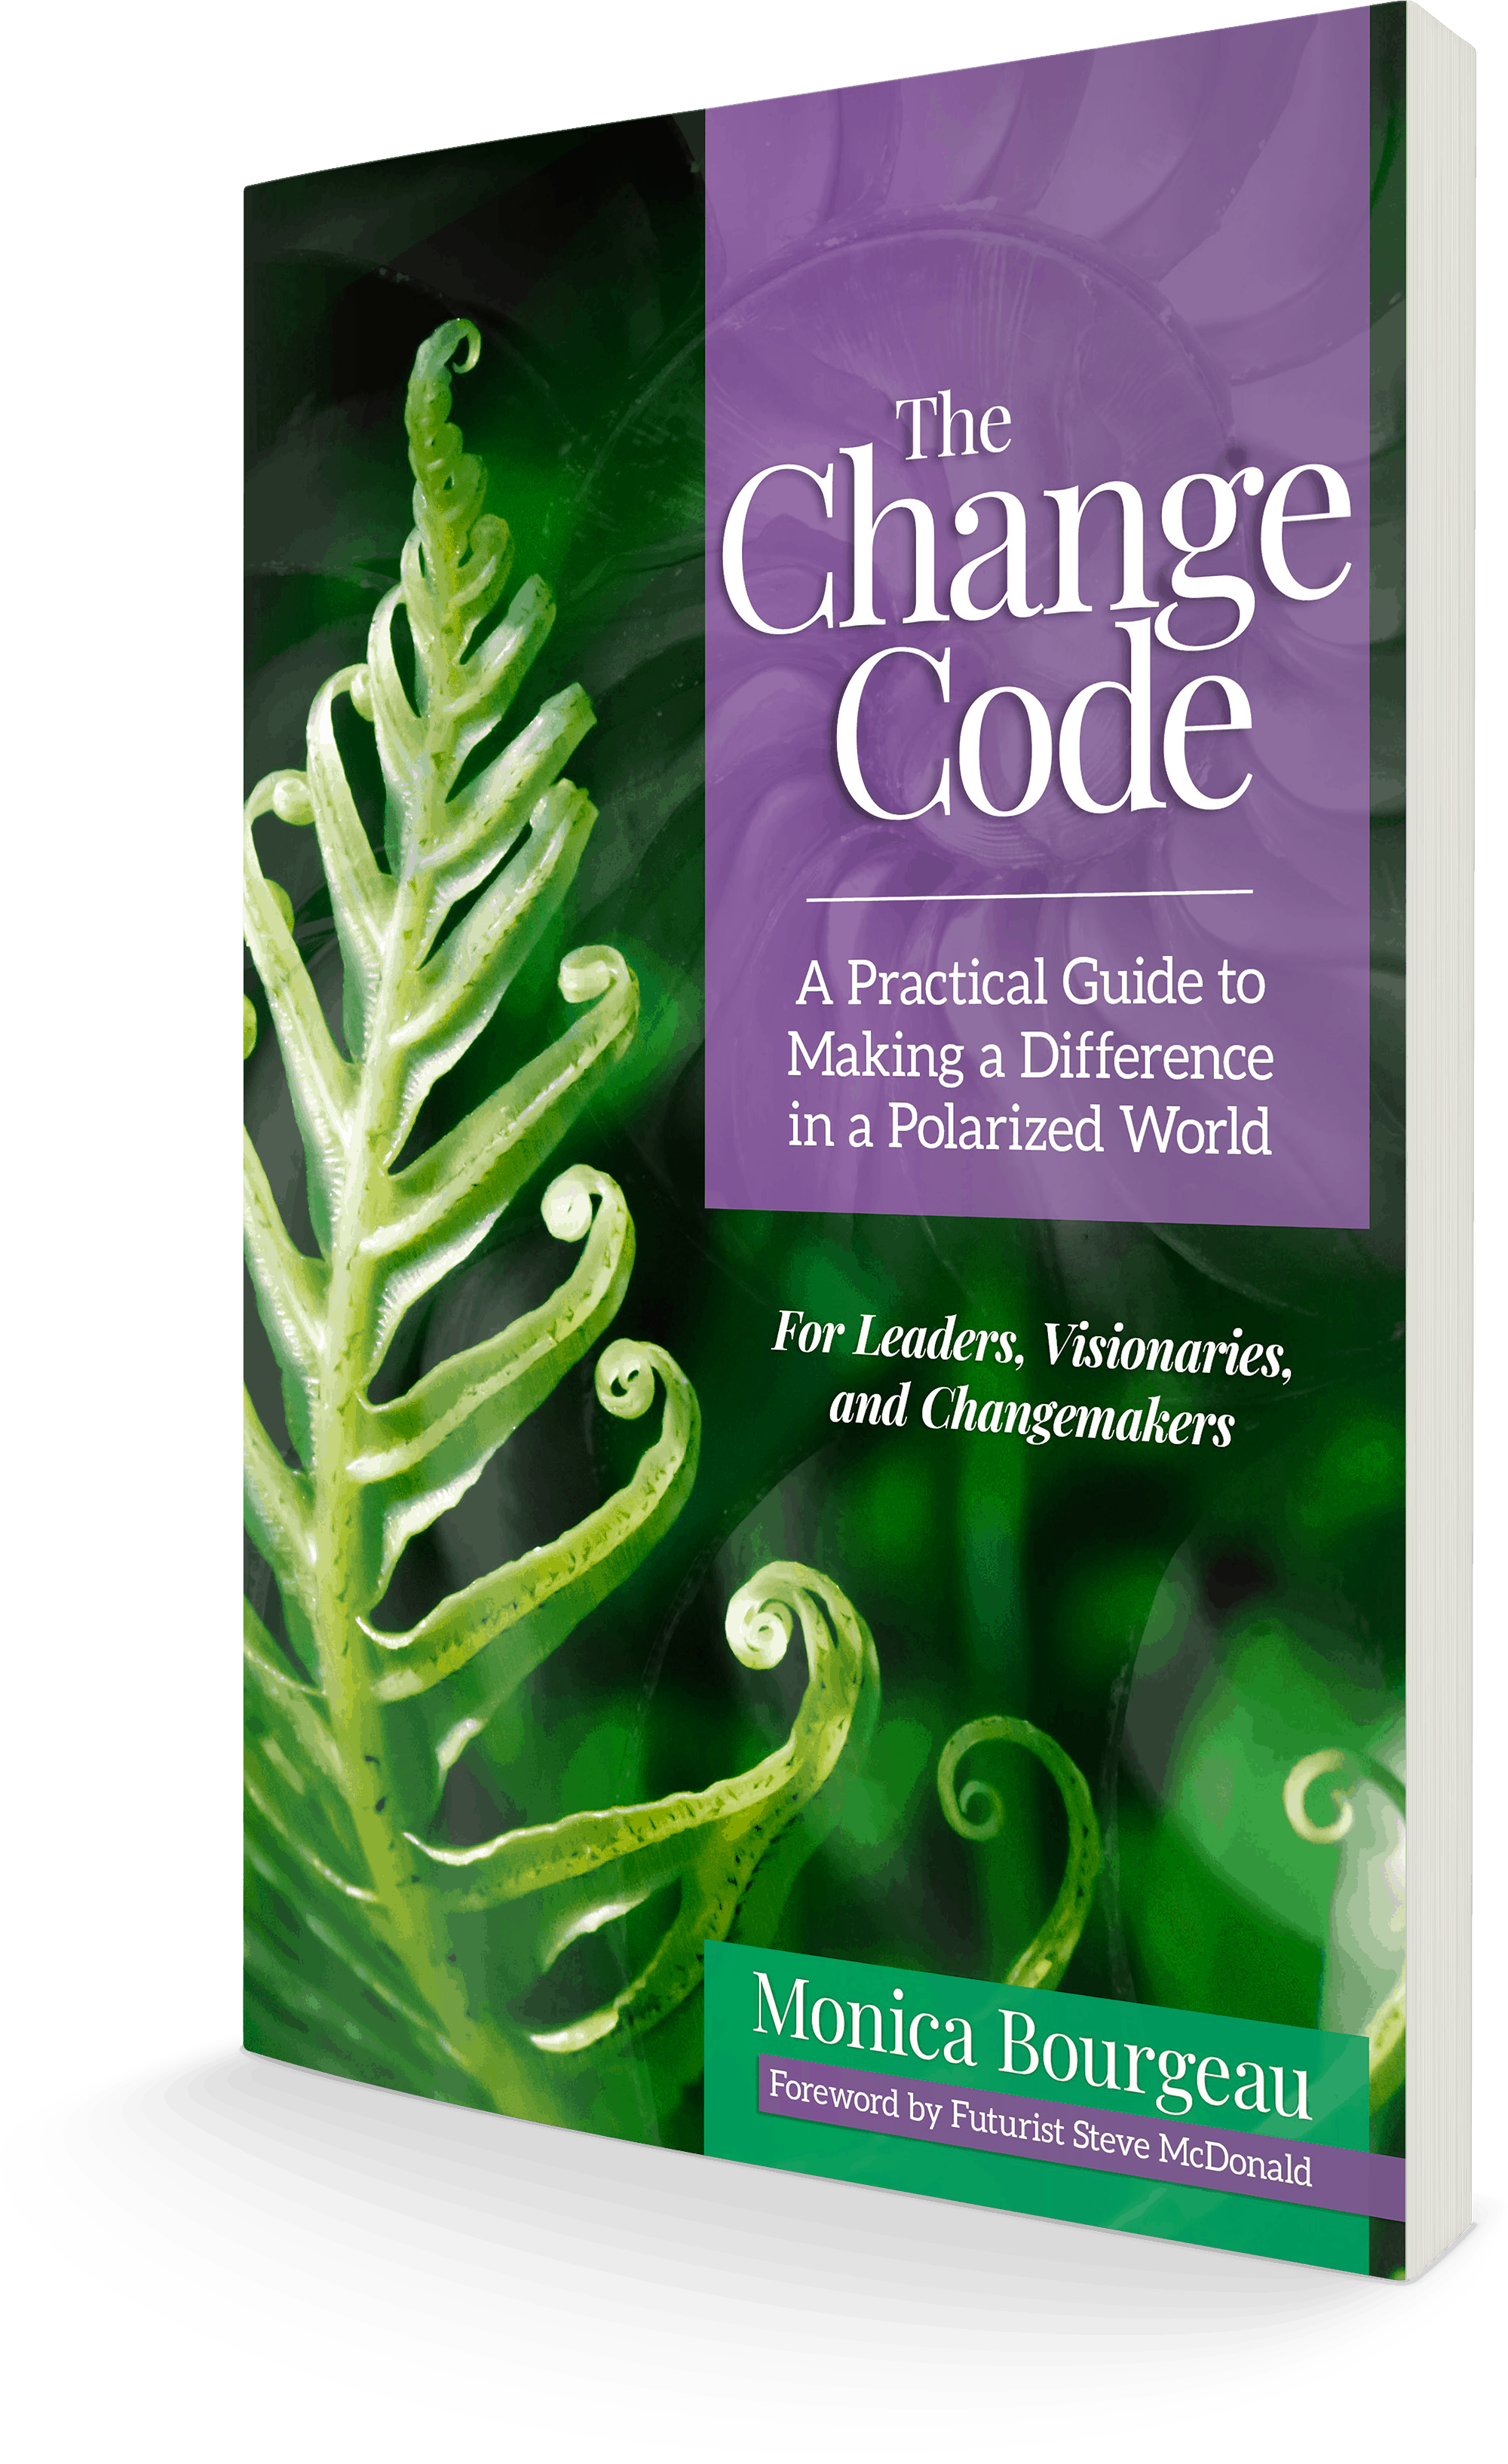 The Change Code